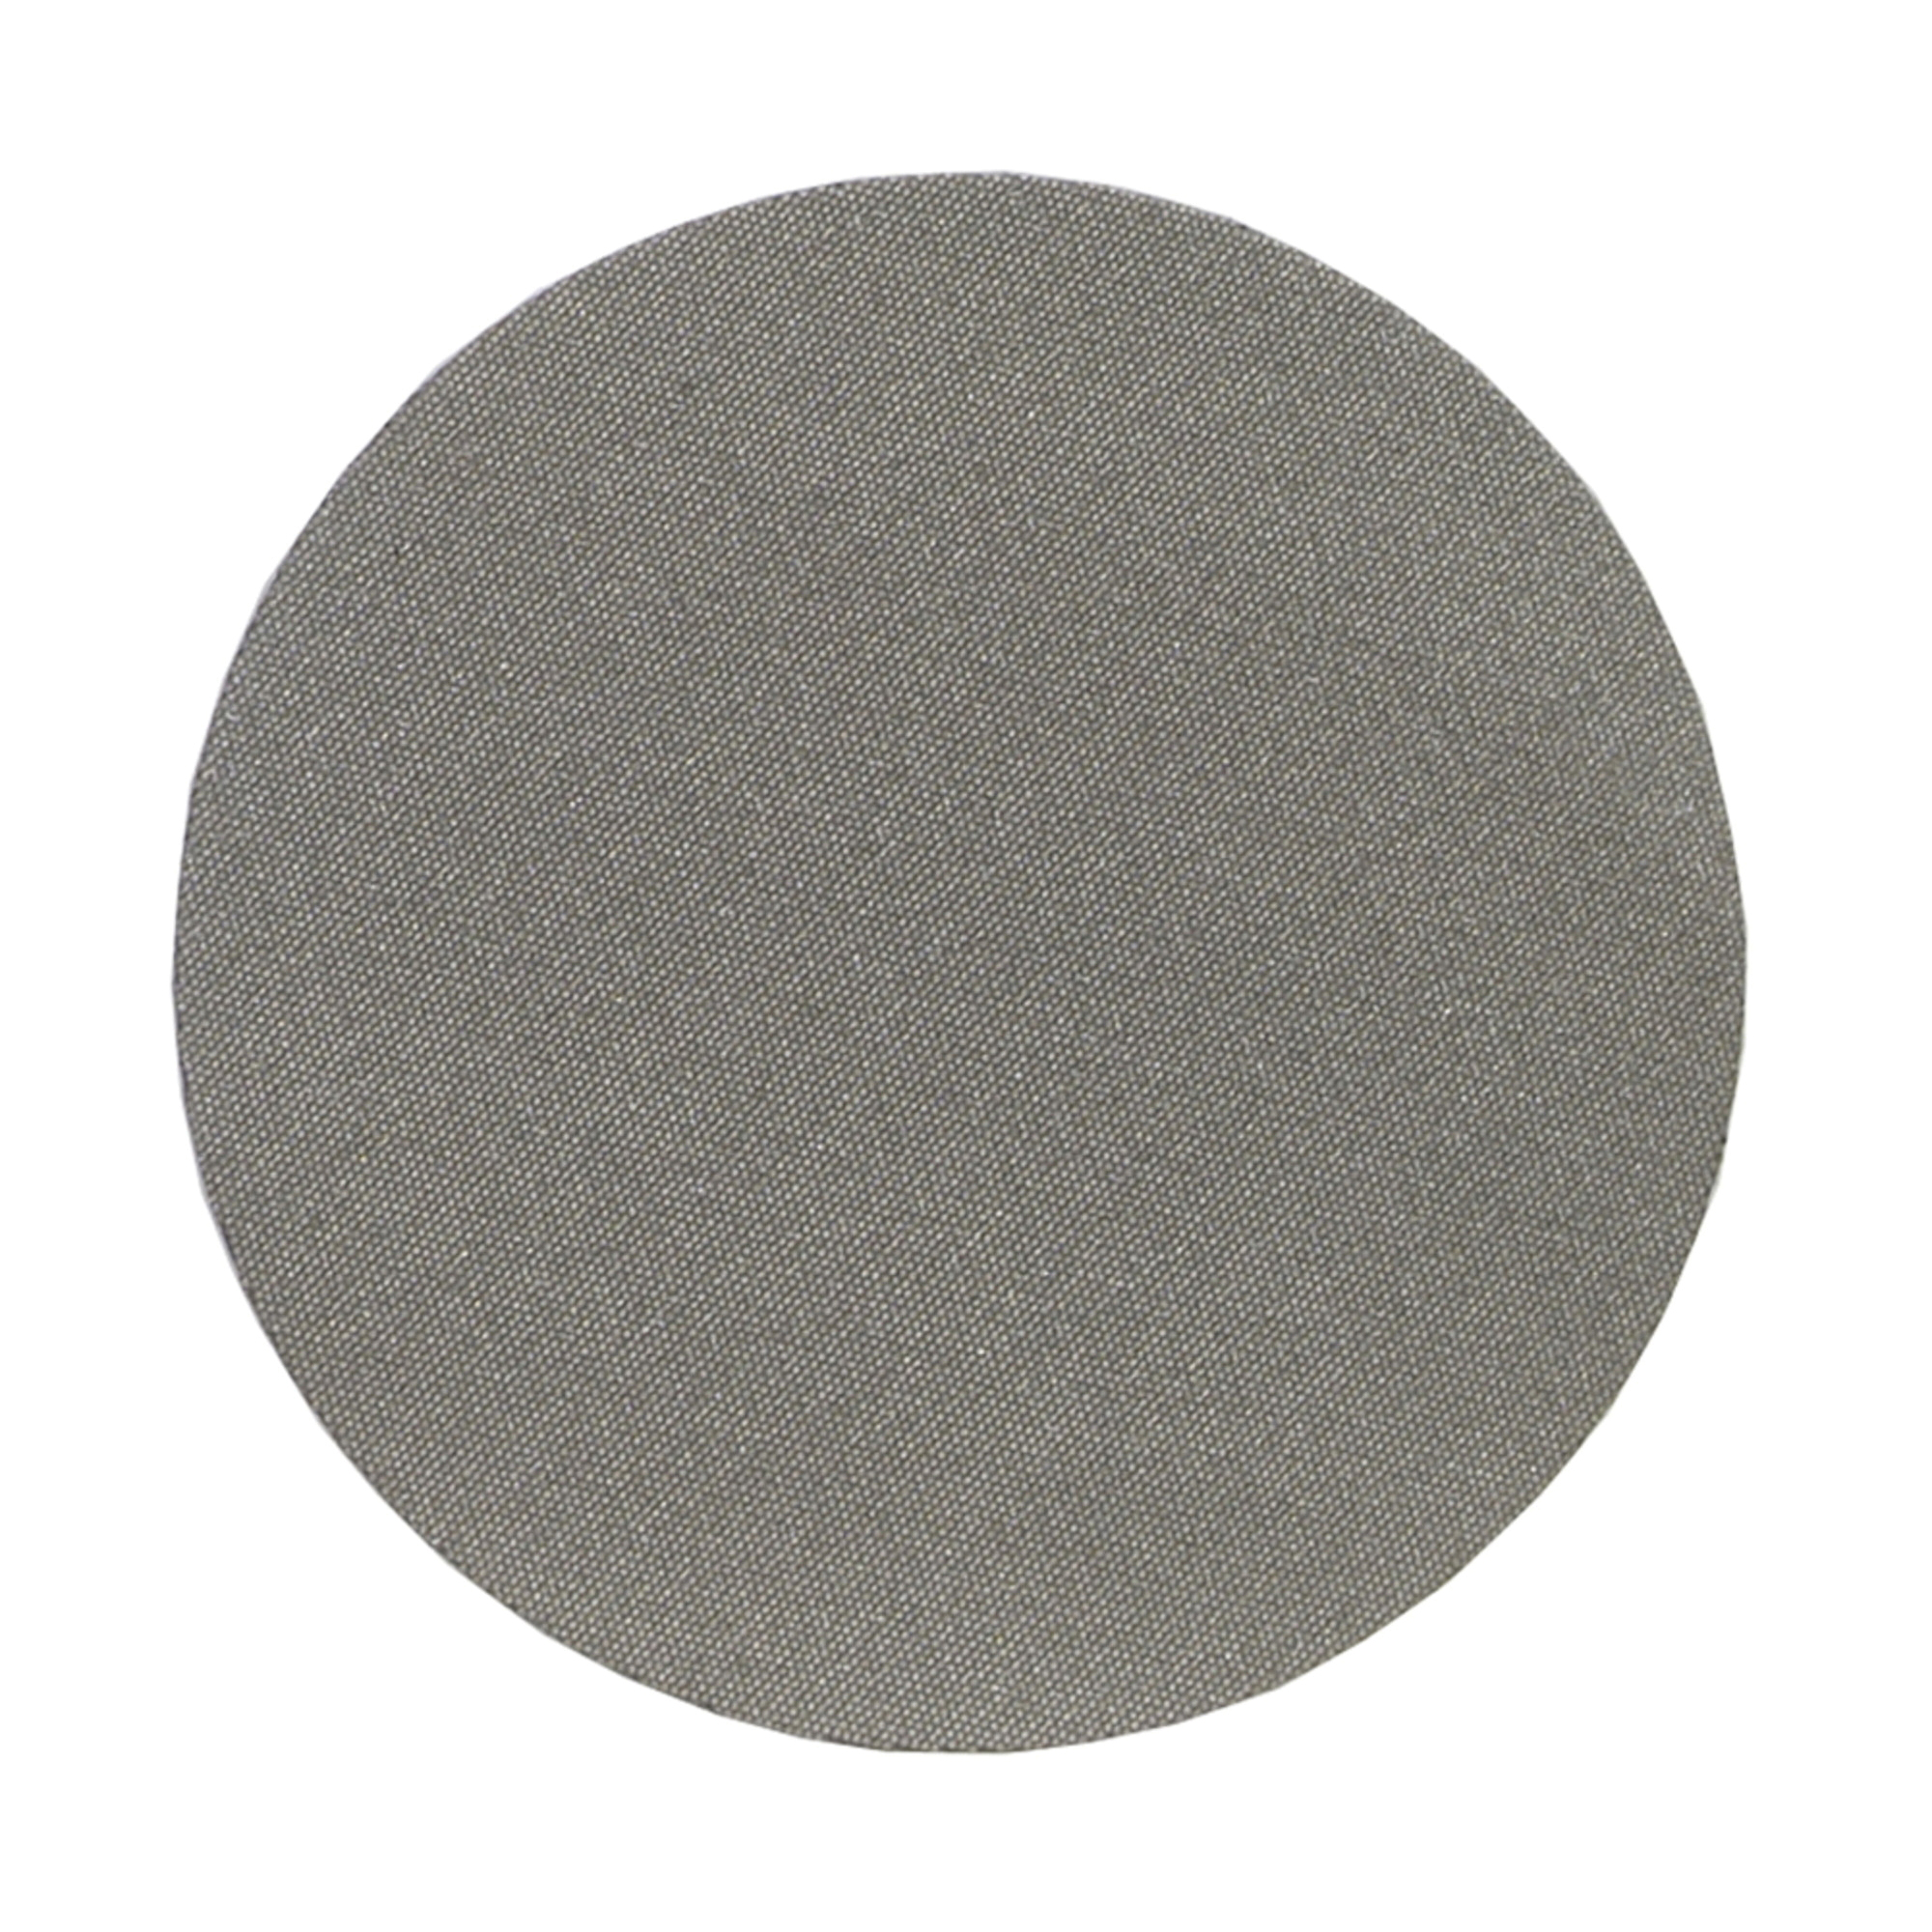 Norton® 66260306382 D71S Flexible Coated Abrasive Disc, 6 in Dia, 120 Grit, Fine Grade, Diamond Abrasive